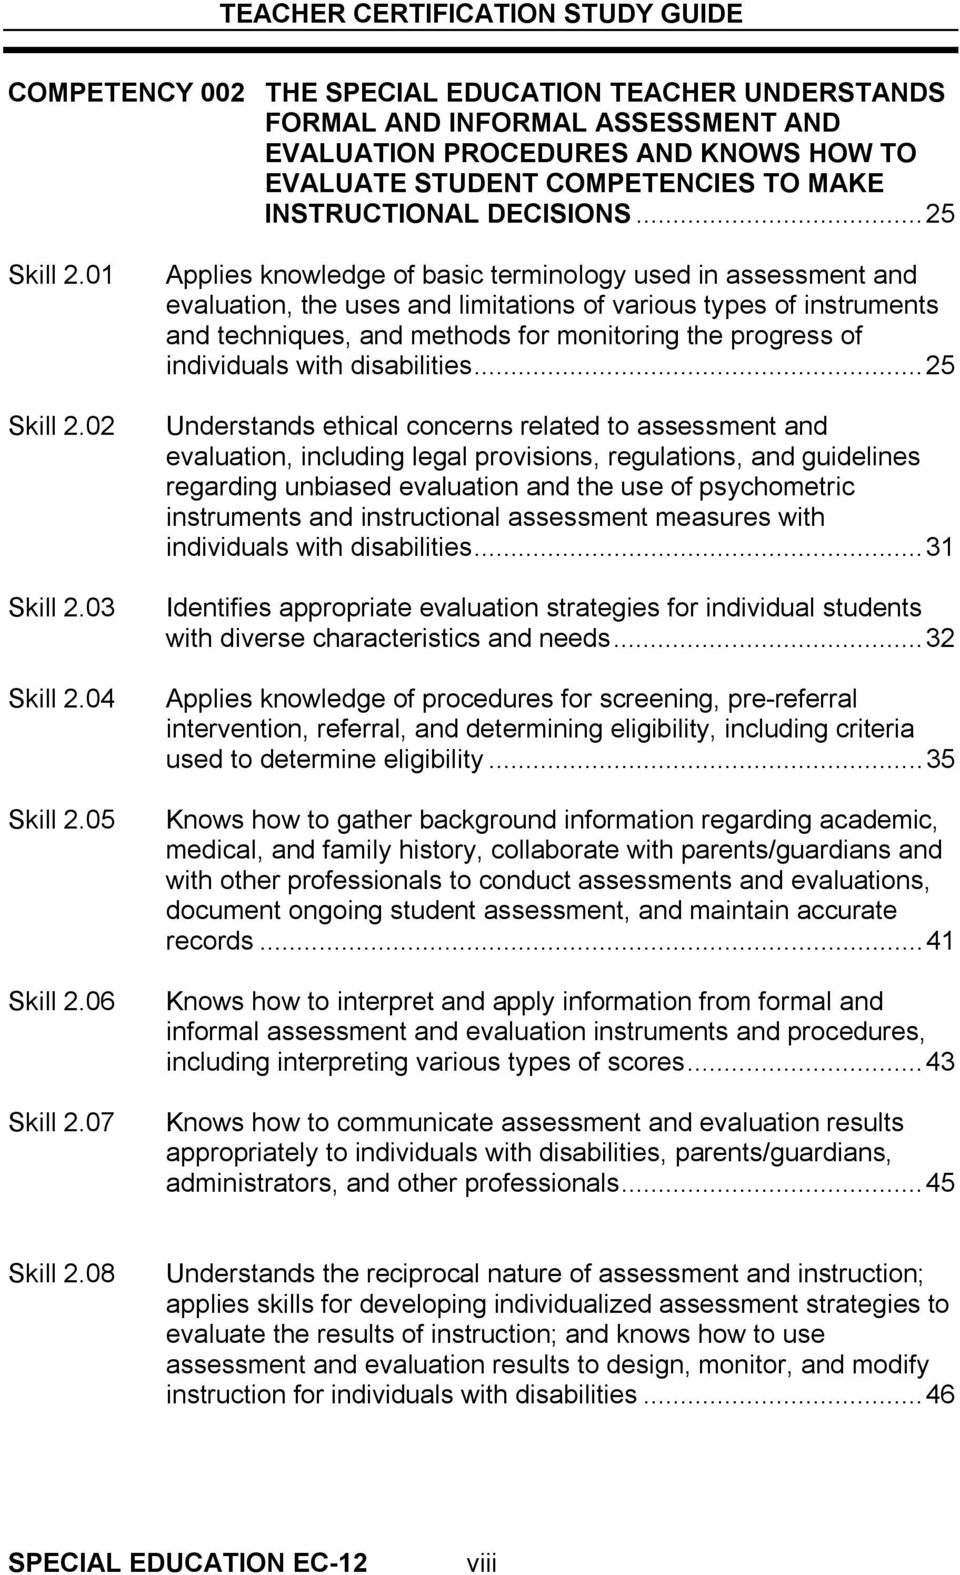 07 Applies knowledge of basic terminology used in assessment and evaluation, the uses and limitations of various types of instruments and techniques, and methods for monitoring the progress of